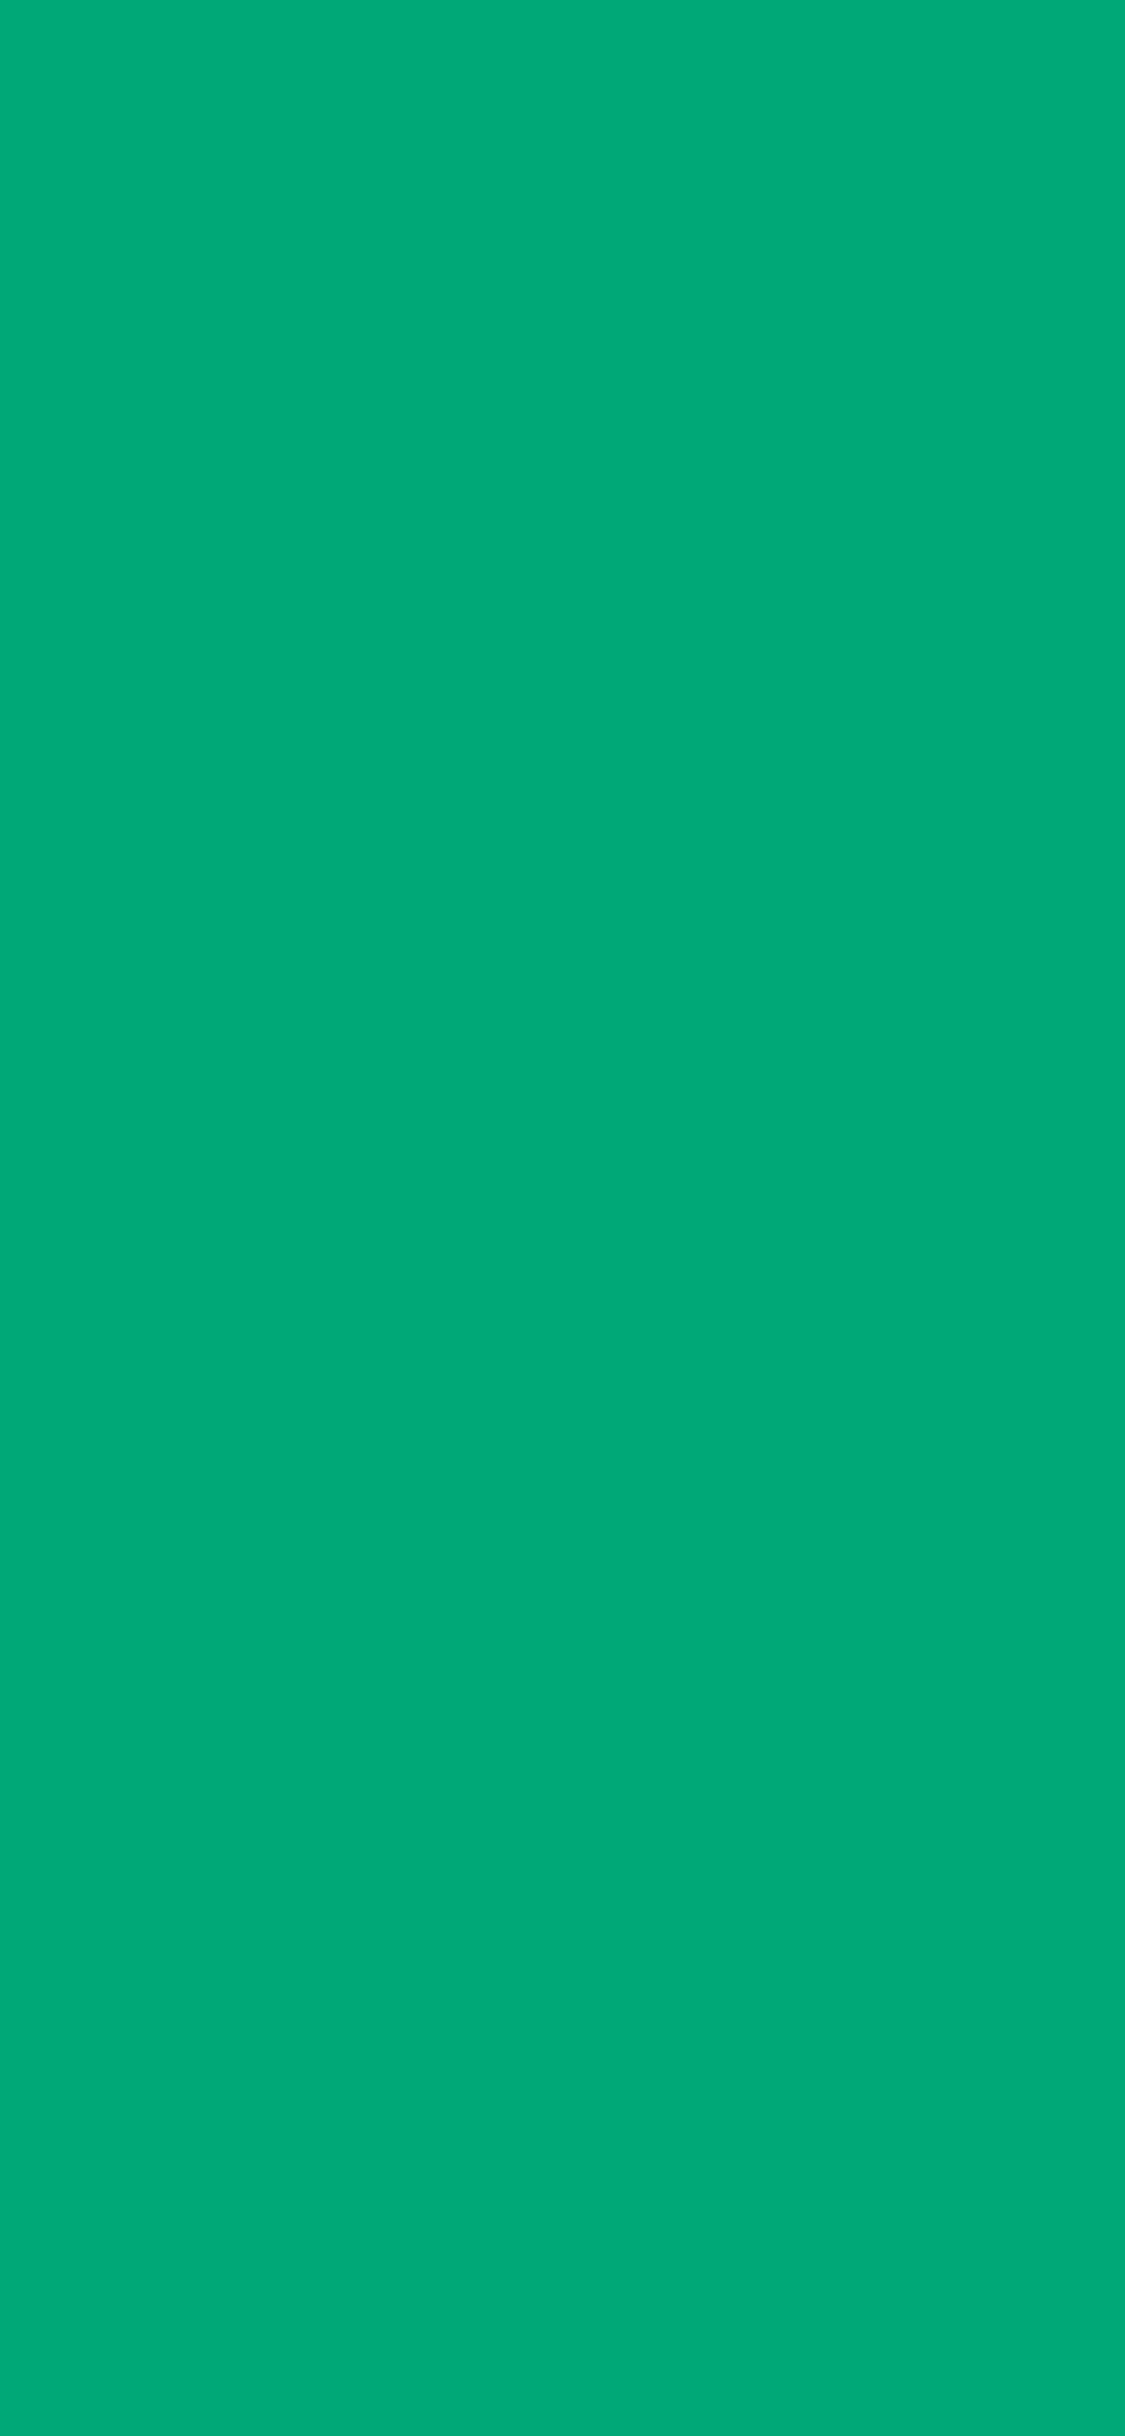 1125x2436 Green Munsell Solid Color Background